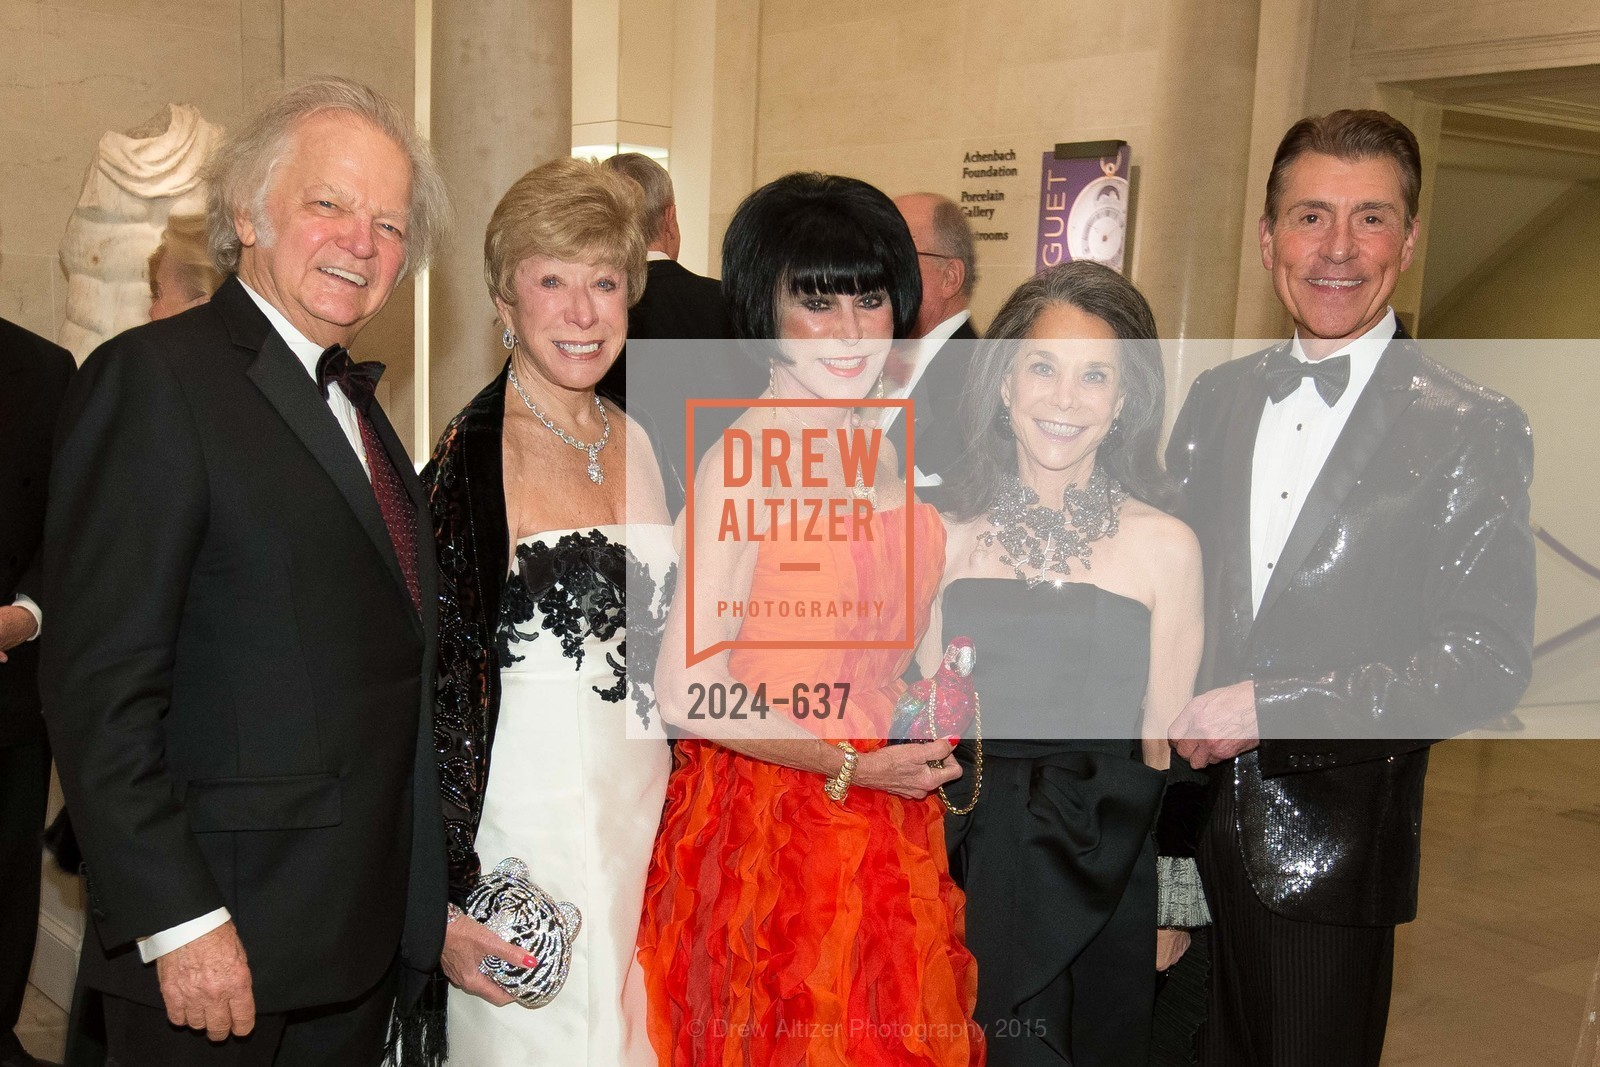 Michael Cabak, Maria Pitcairn, Marilyn Cabak, Julie Coplon, Robert Beadle, AN ELEGANT EVENING Presented by the Fine Arts Museums of San Francisco, Legion of Honor, Court of Honor. 100 34th Ave, December 8th, 2015,Drew Altizer, Drew Altizer Photography, full-service agency, private events, San Francisco photographer, photographer california